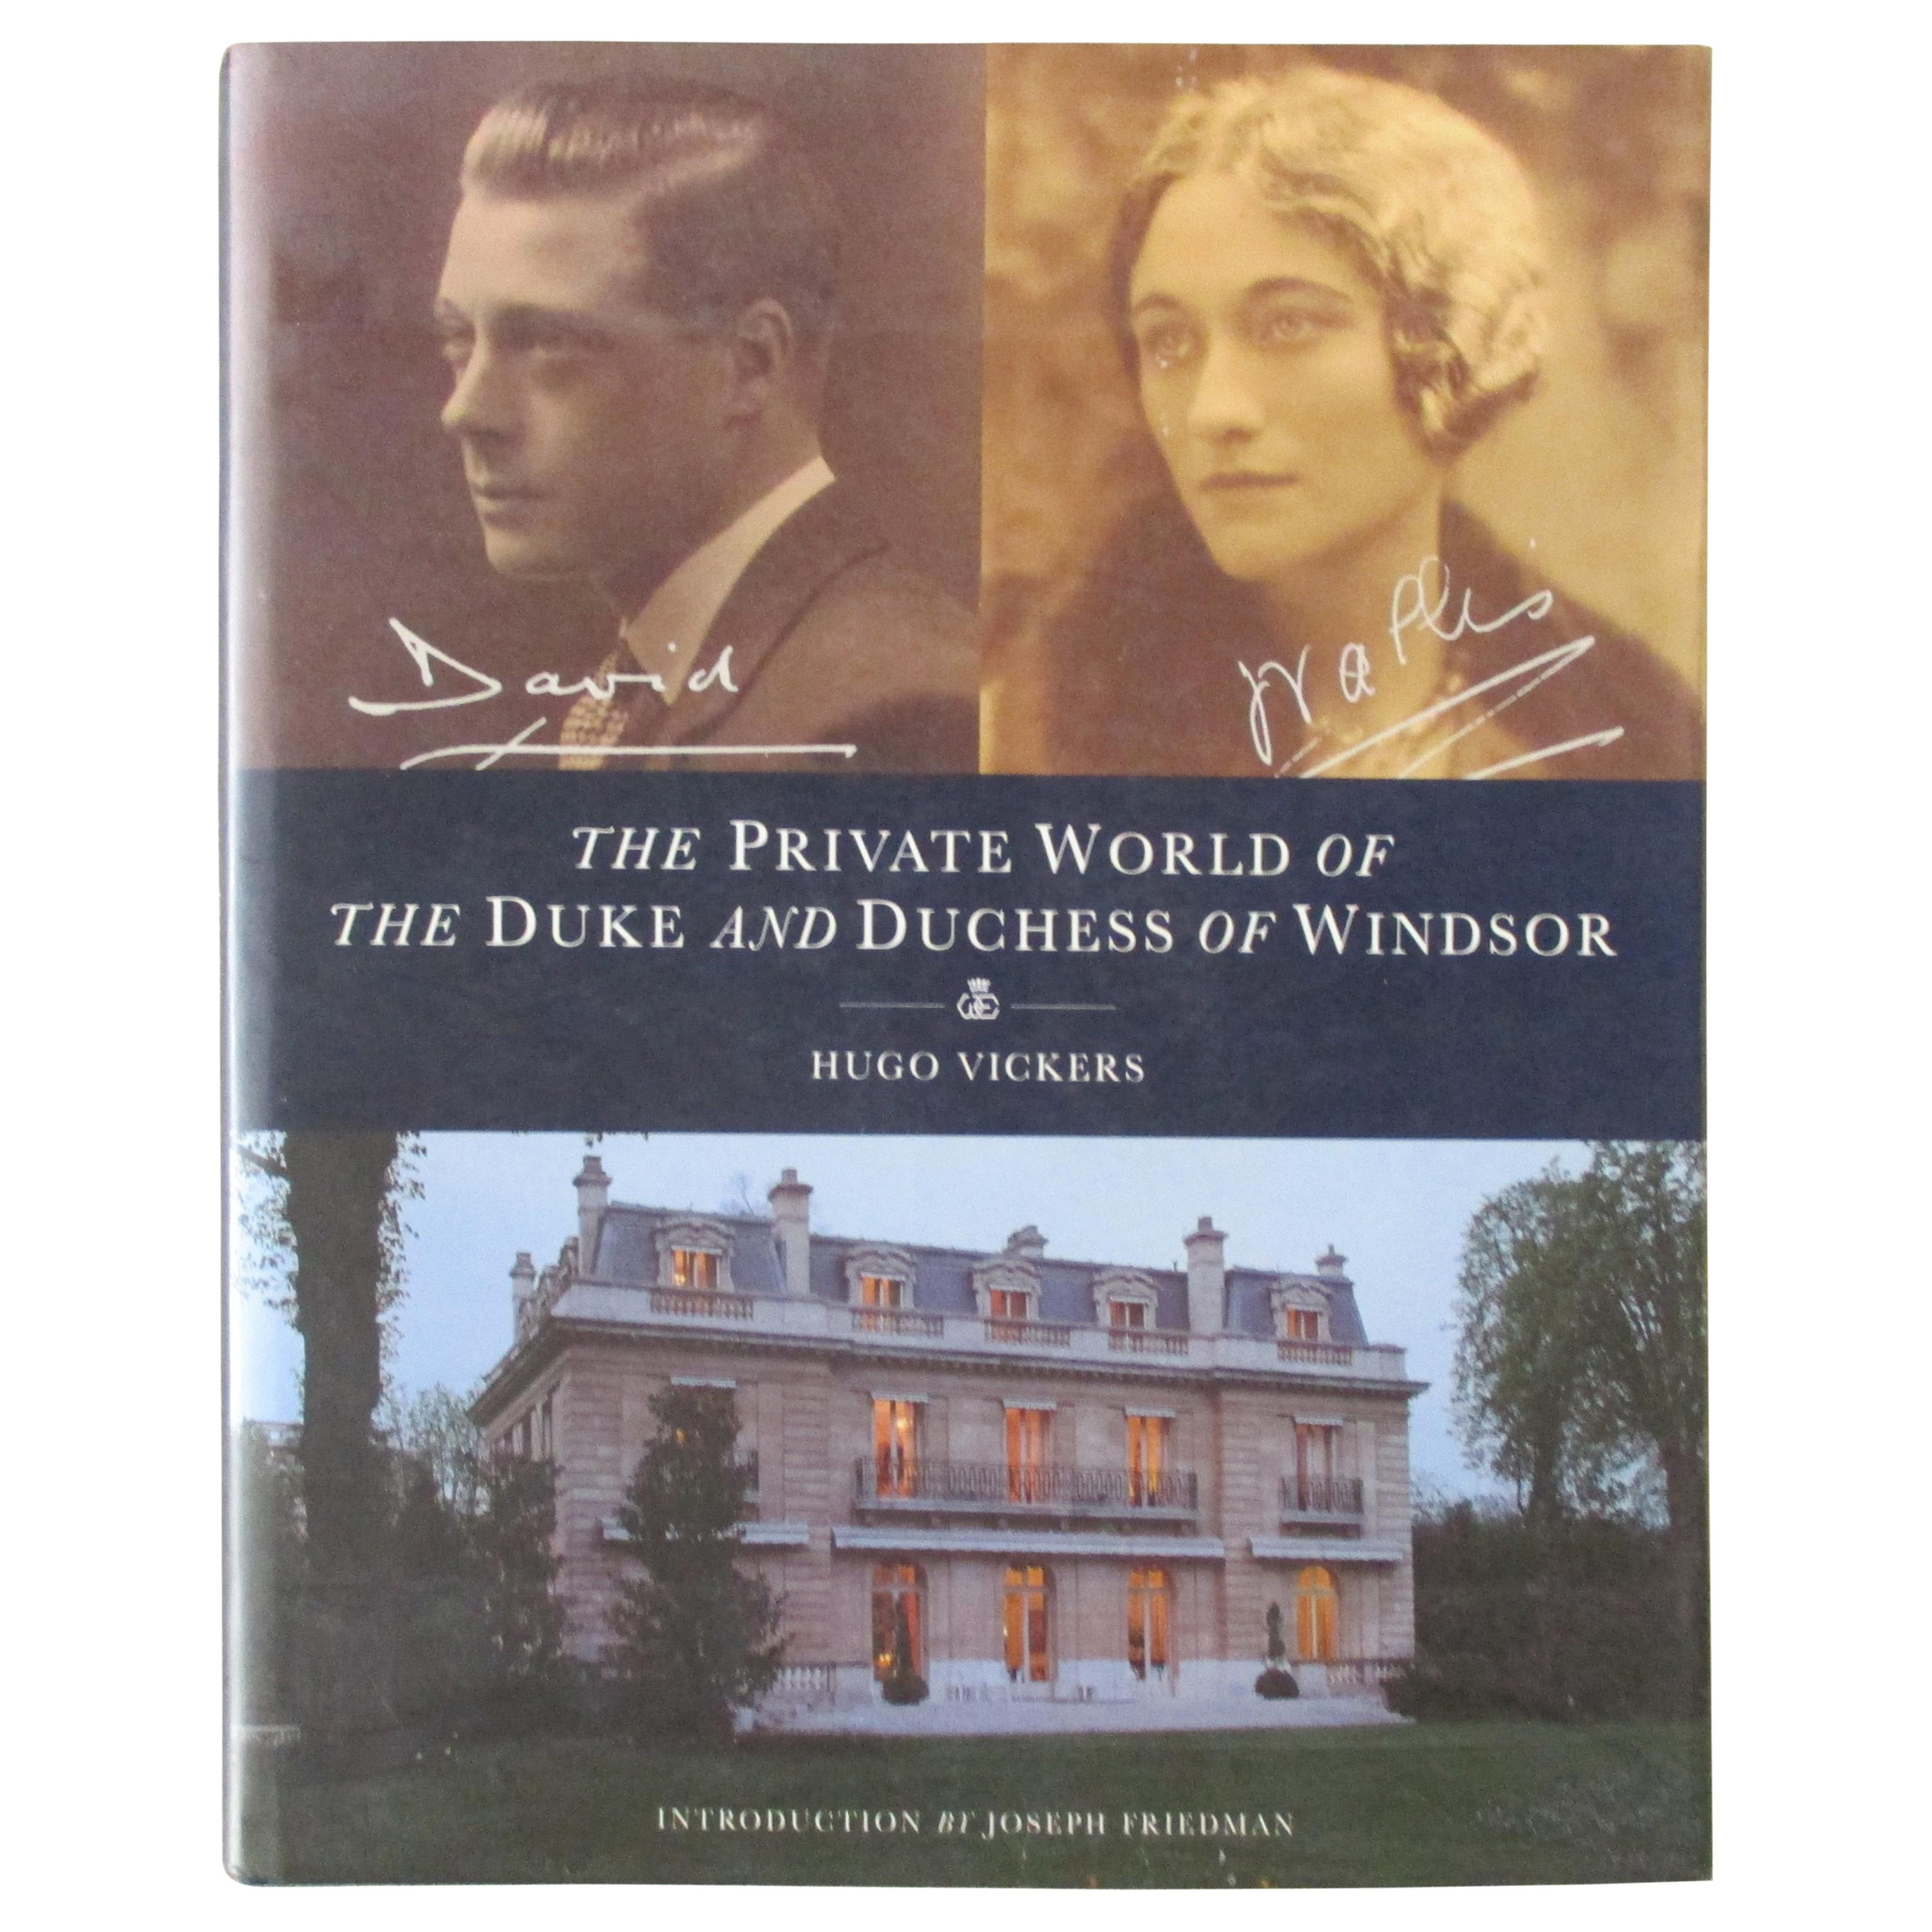 'The Private World of the Duke and Duchess of Windsor' Book